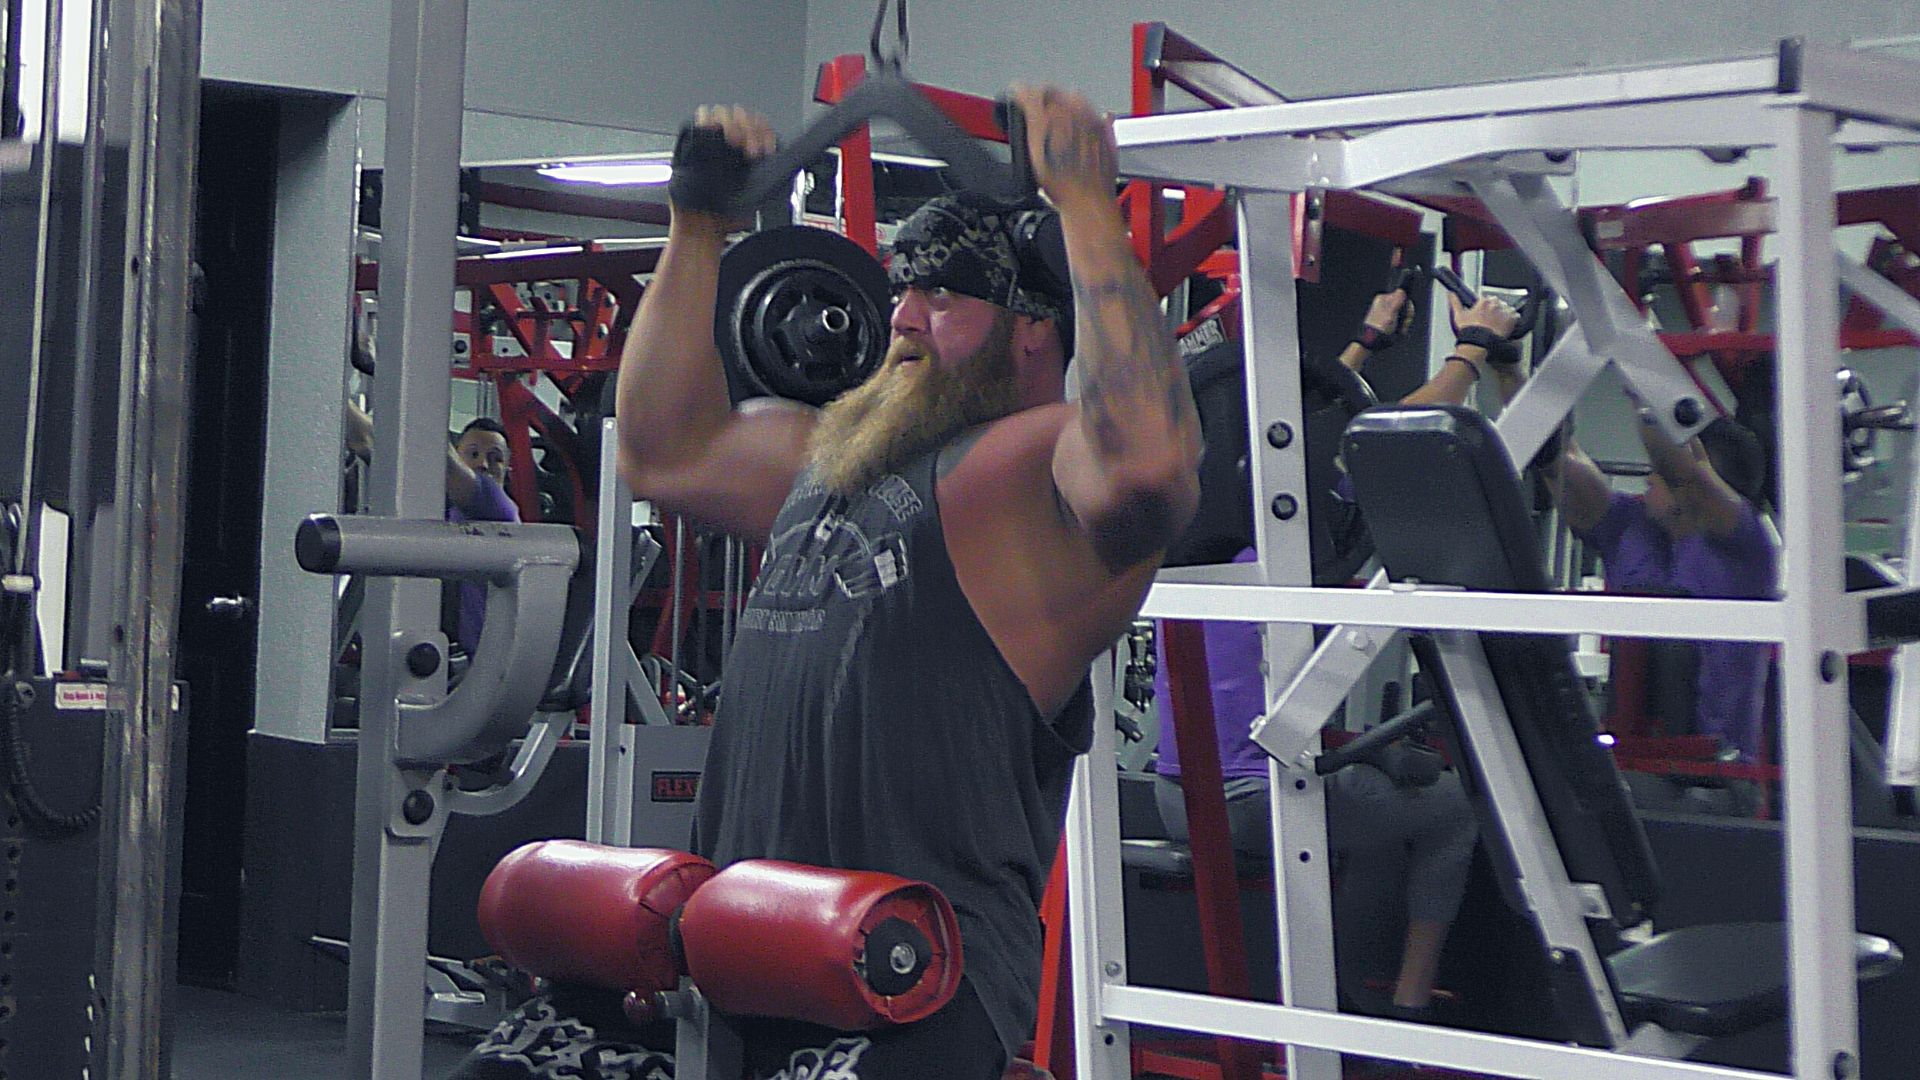 Man doing lat pulldowns in the gym